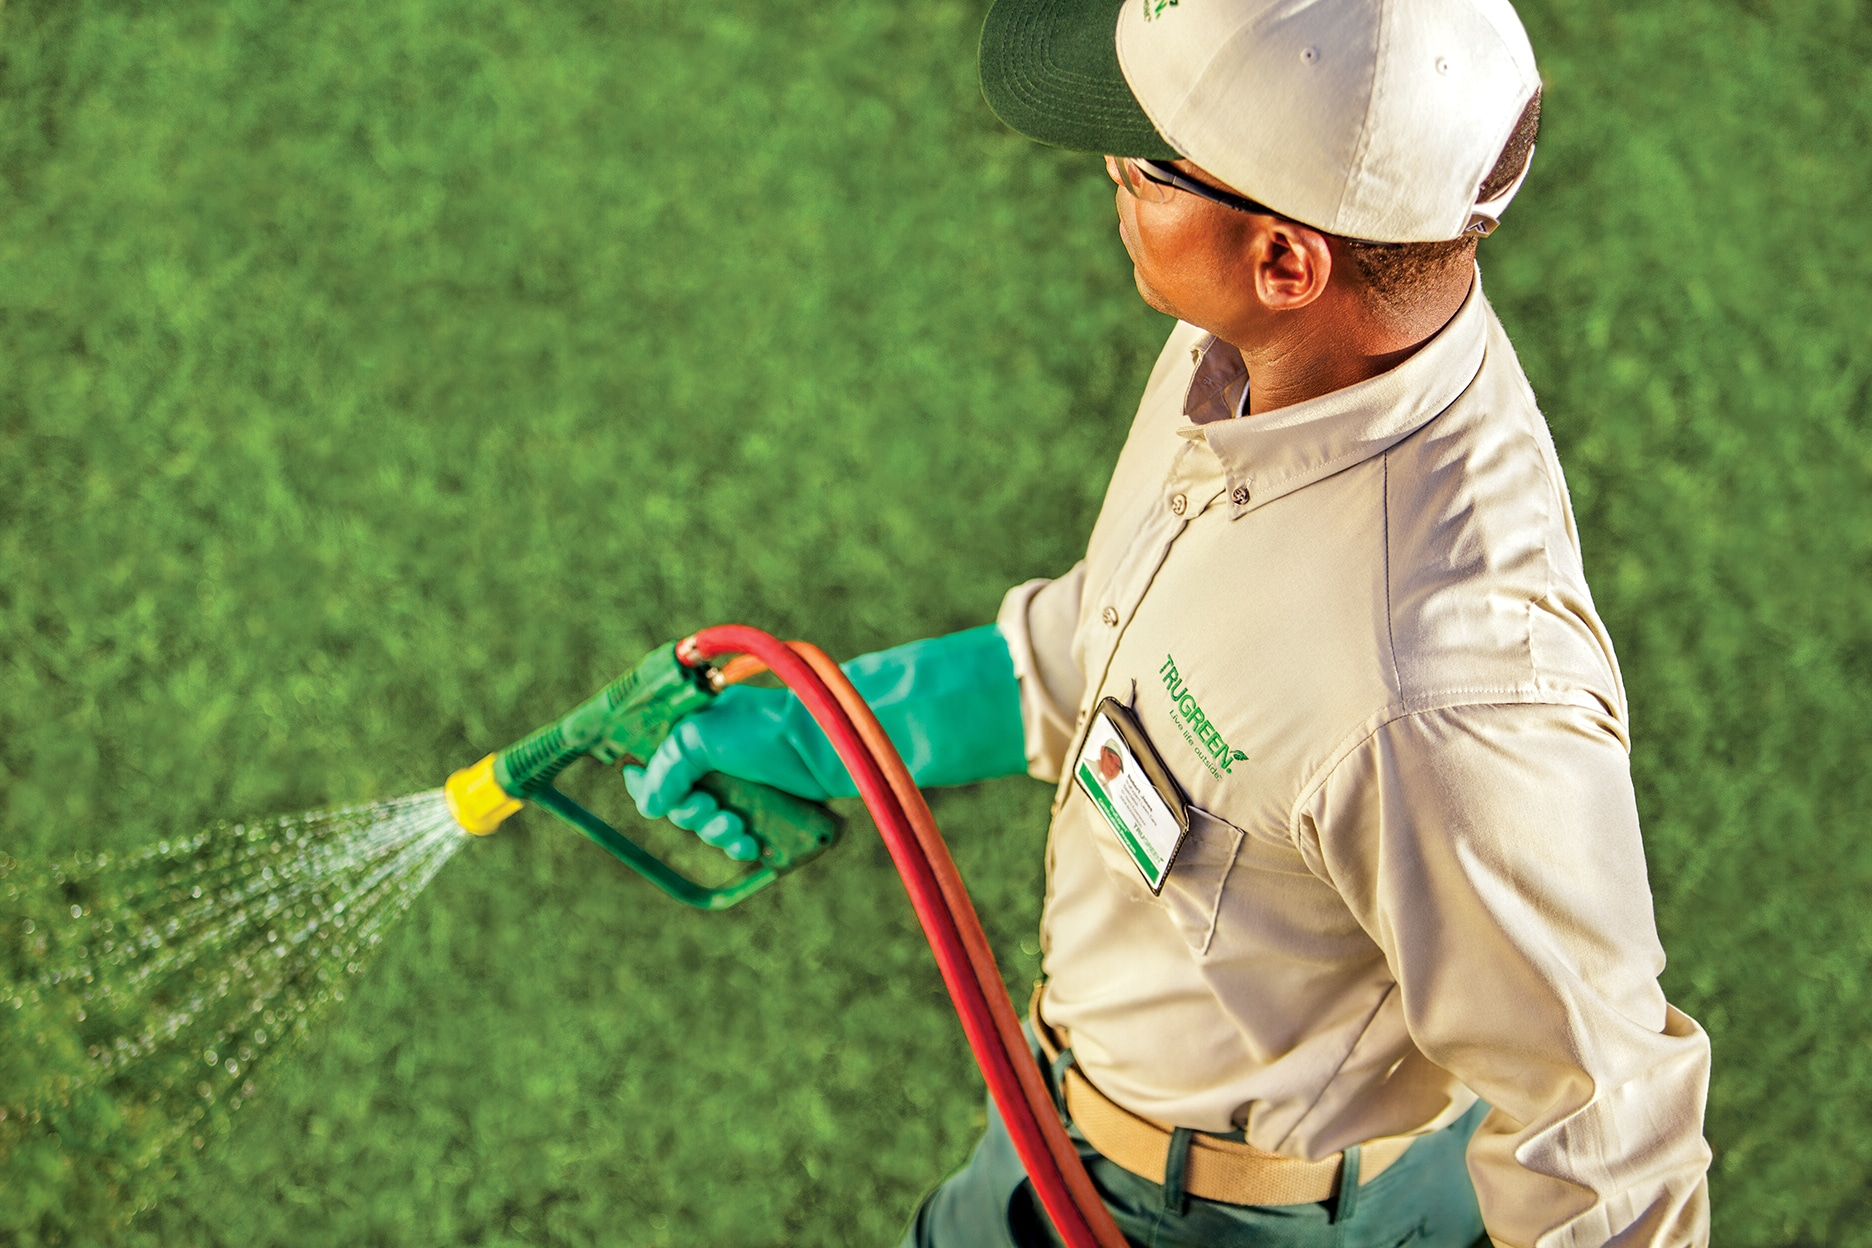 TruGreen professional lawn care for your backyard oasis